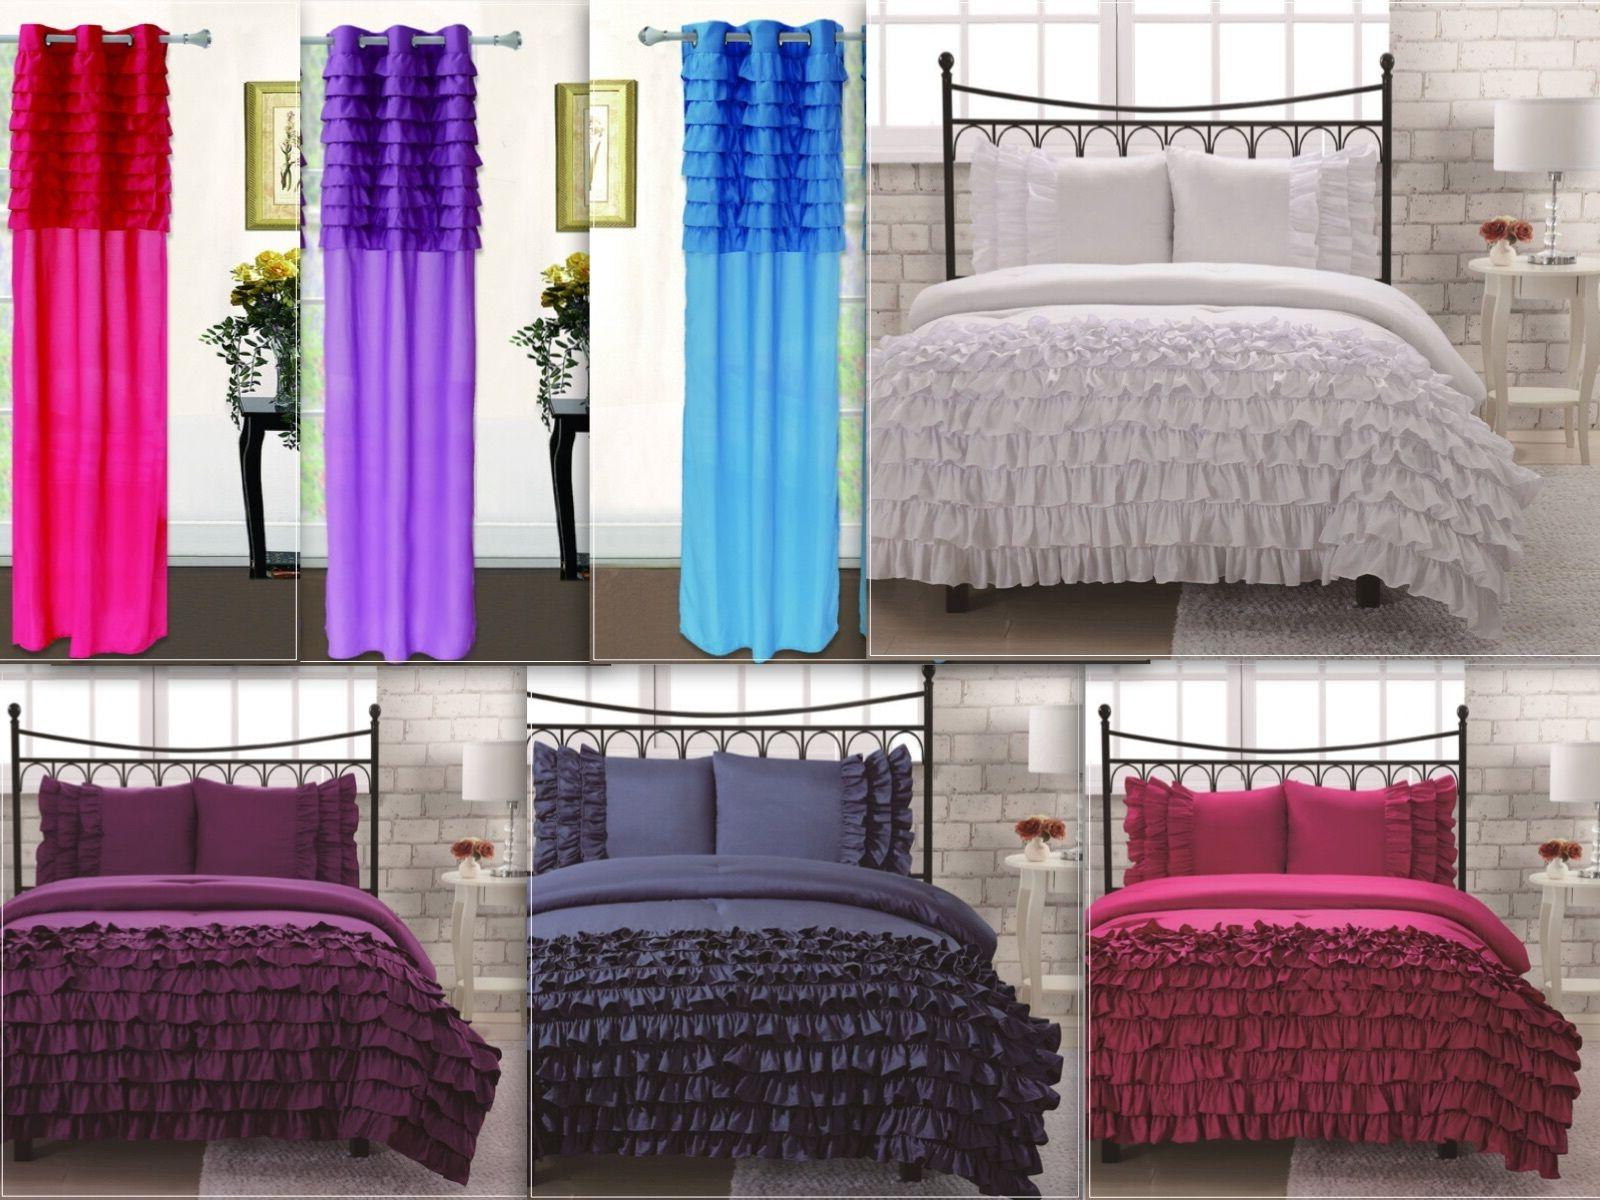 3 piece soft ruffled comforter set